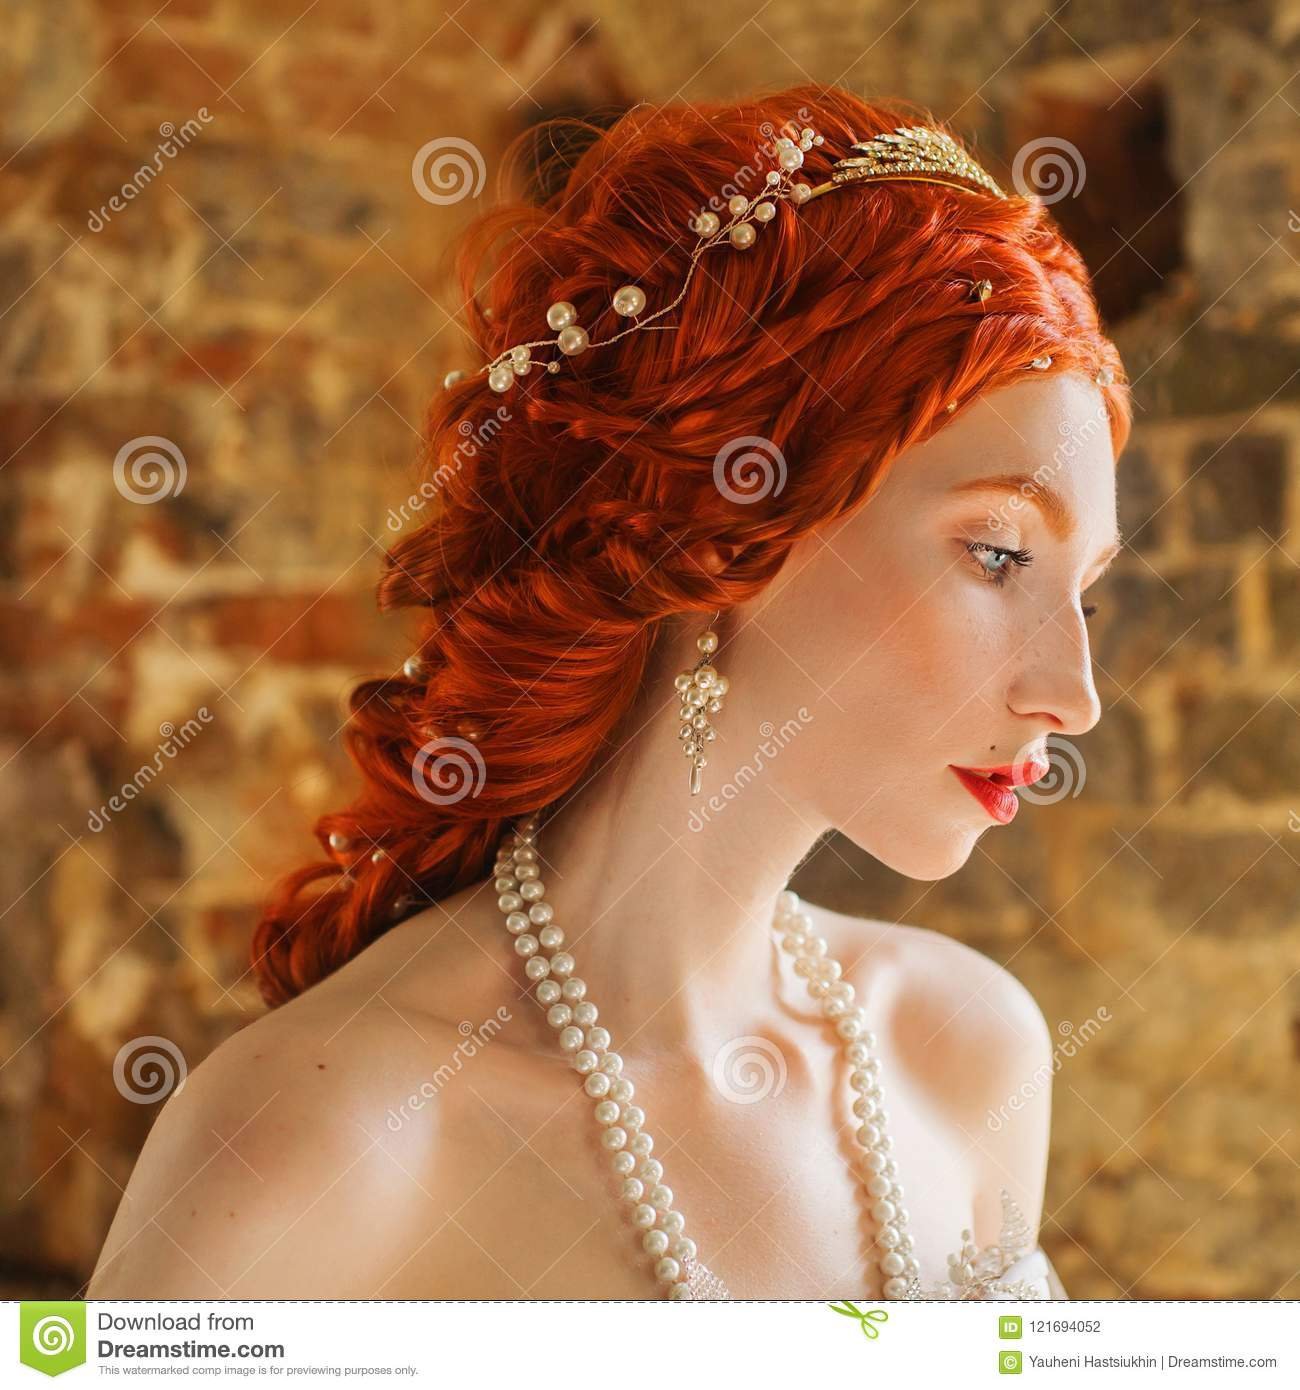 Fairytale Hero Renaissance Redhead Princess With Hairstyle In